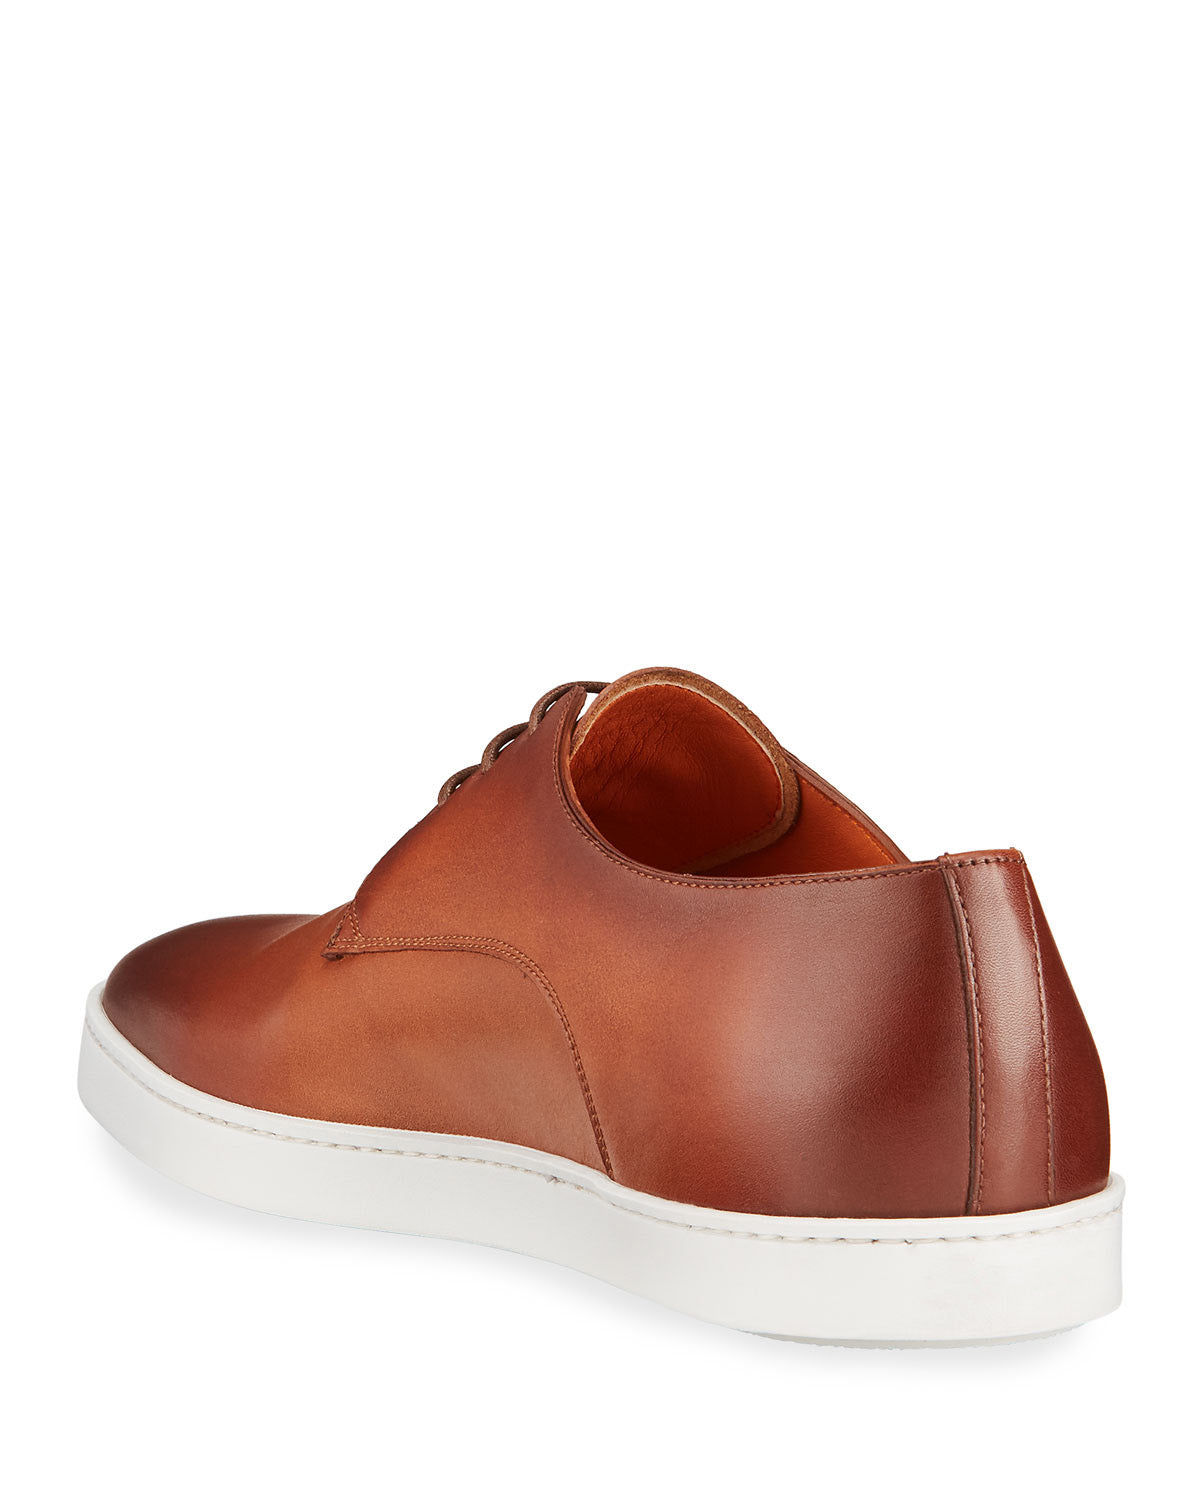 Tan Formal Derby Lace Up Sneaker for Men. White Comfortable Cup Sole.